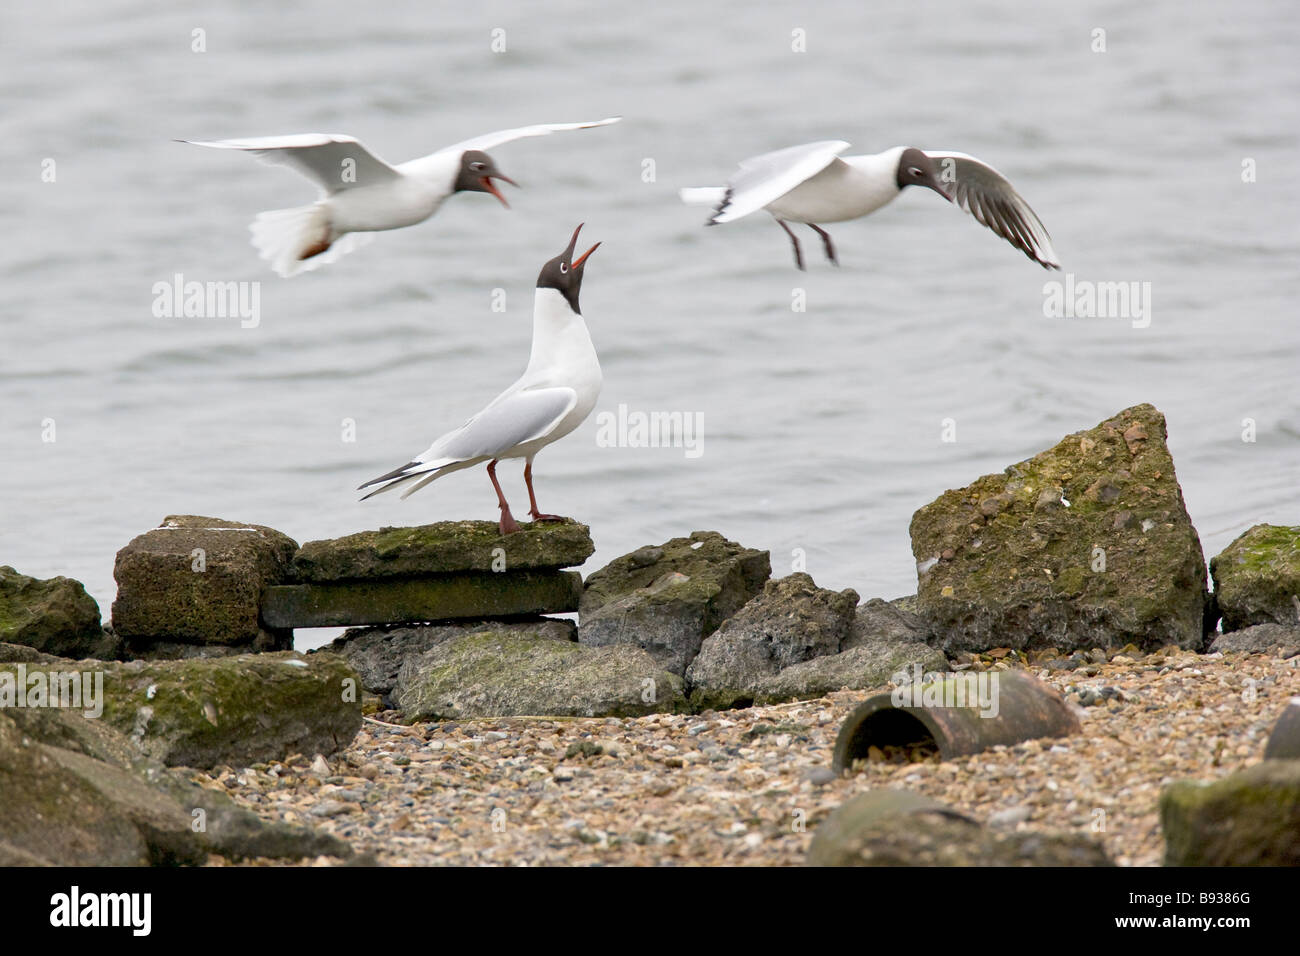 Black headed Gull Larus ridibundus Laridae - Stock Image